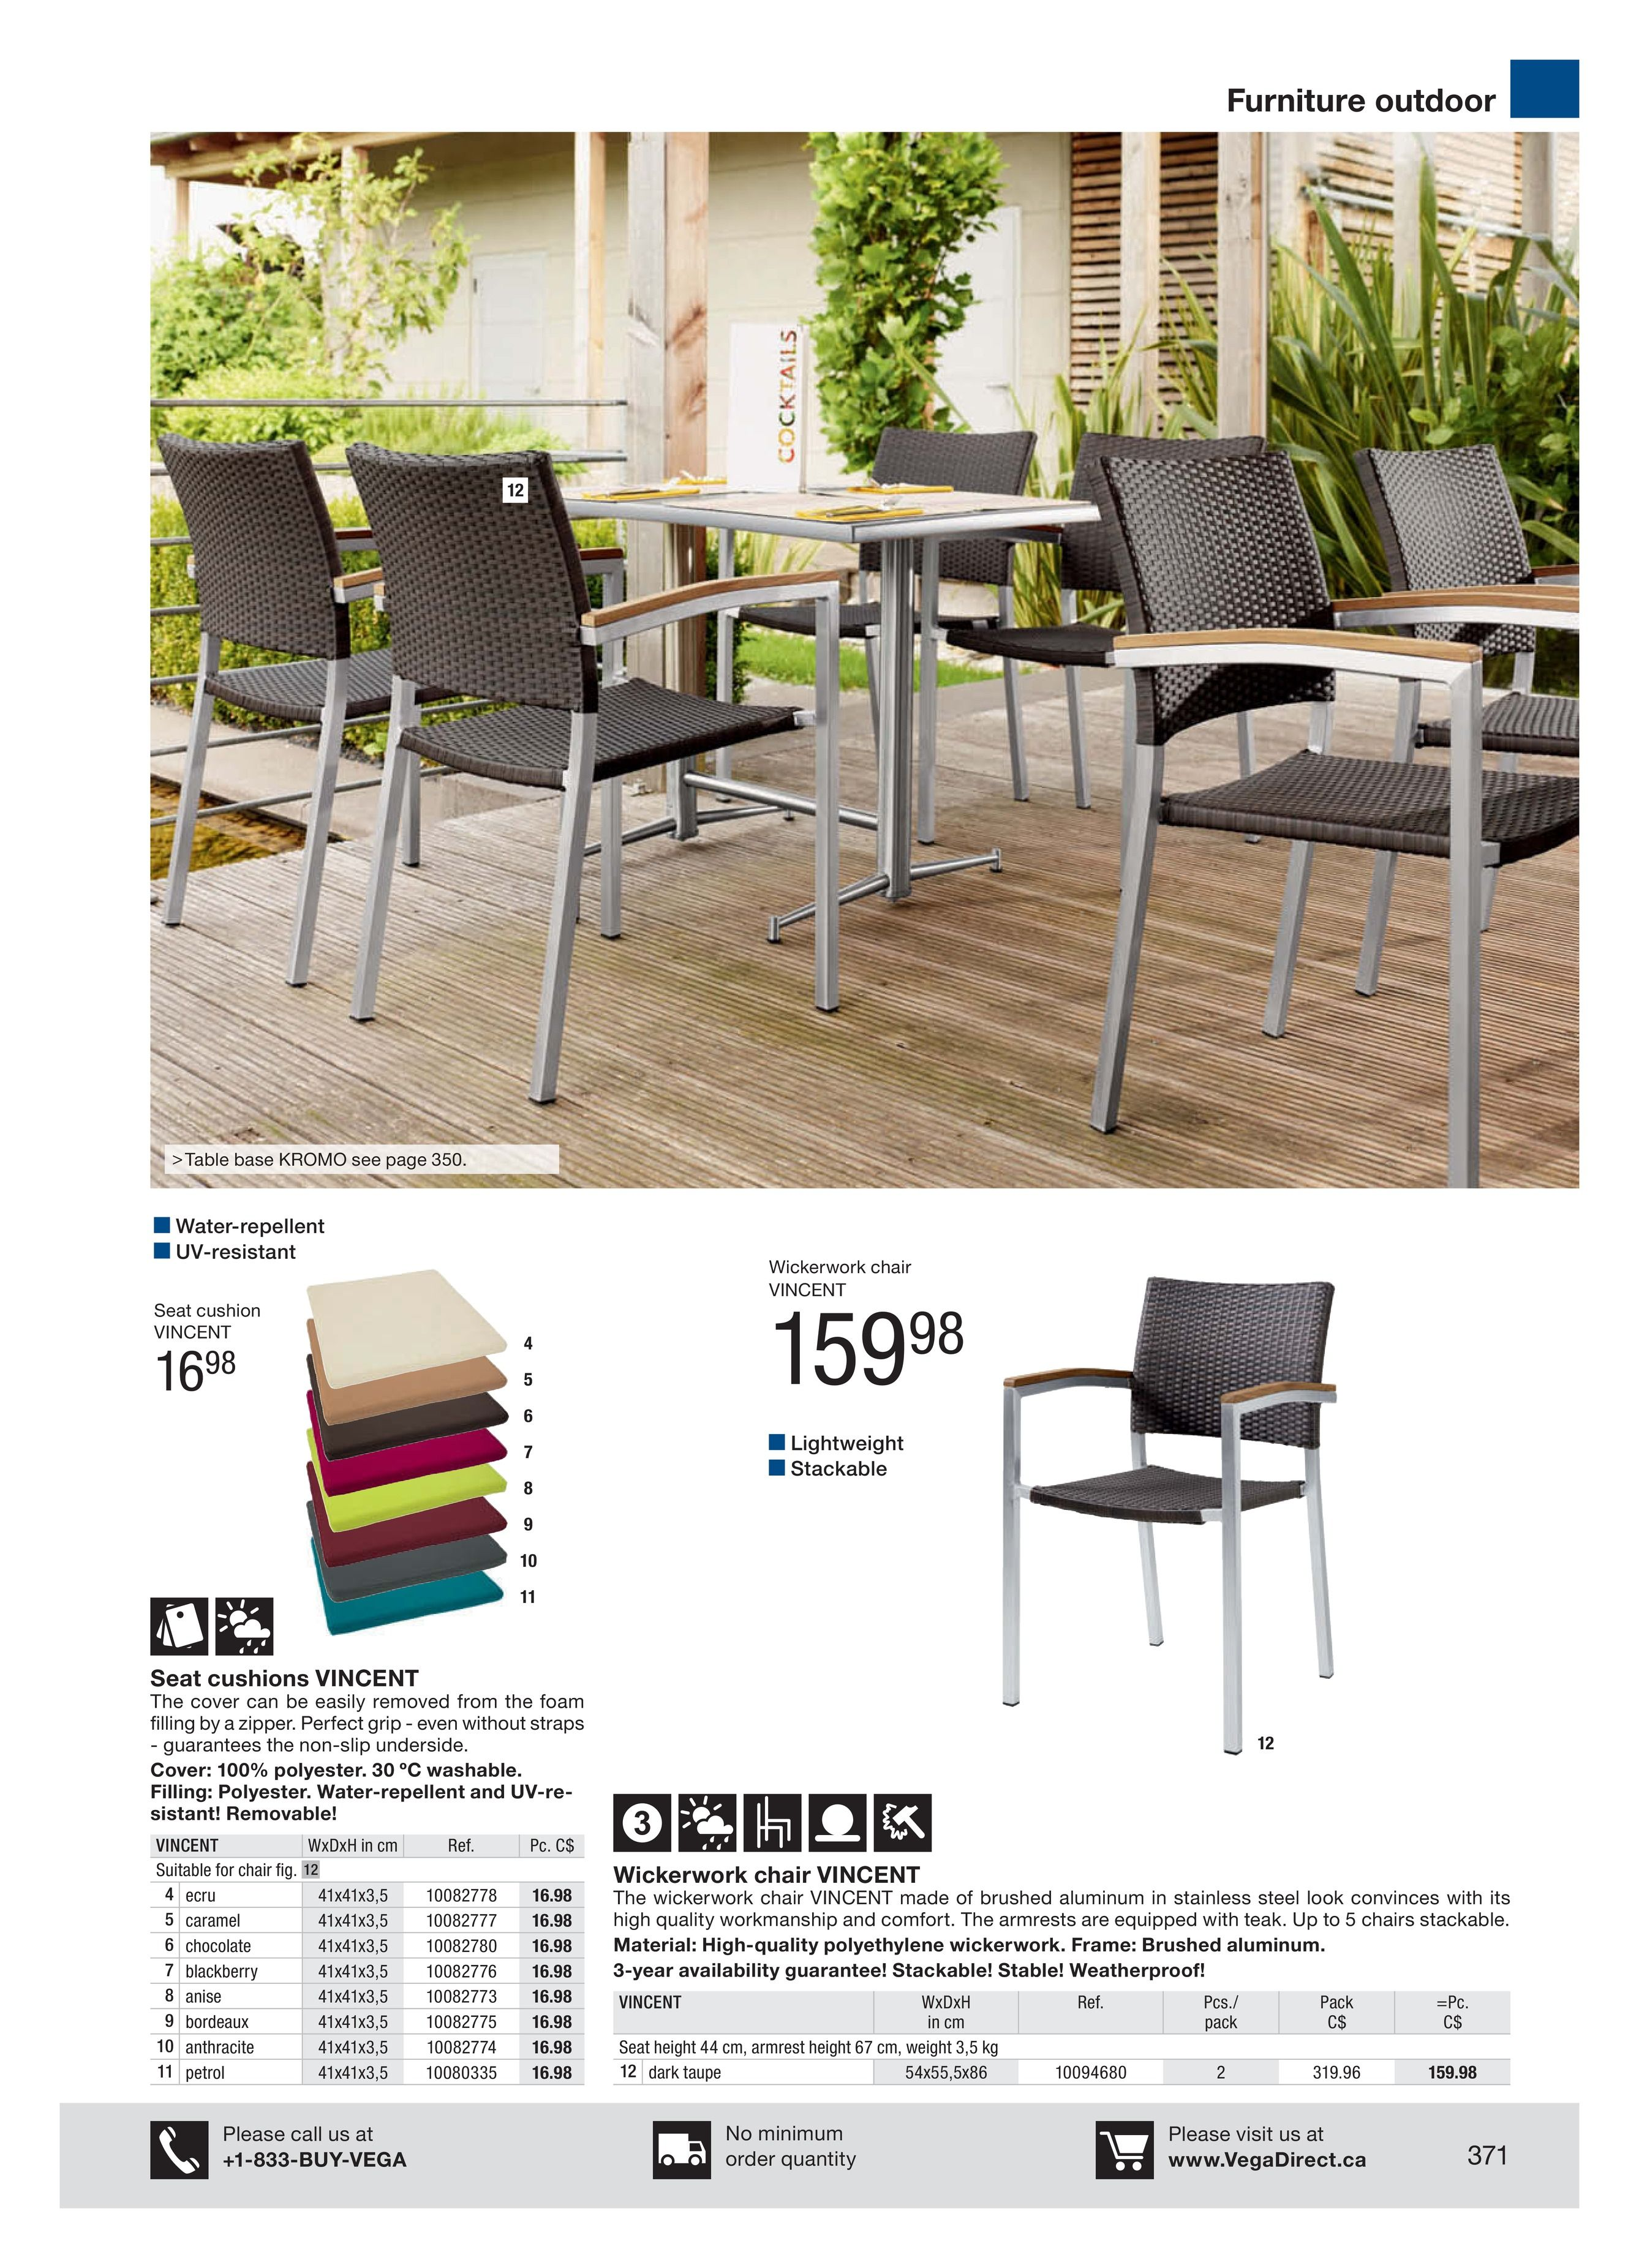 Category furniture outdoor page no 370